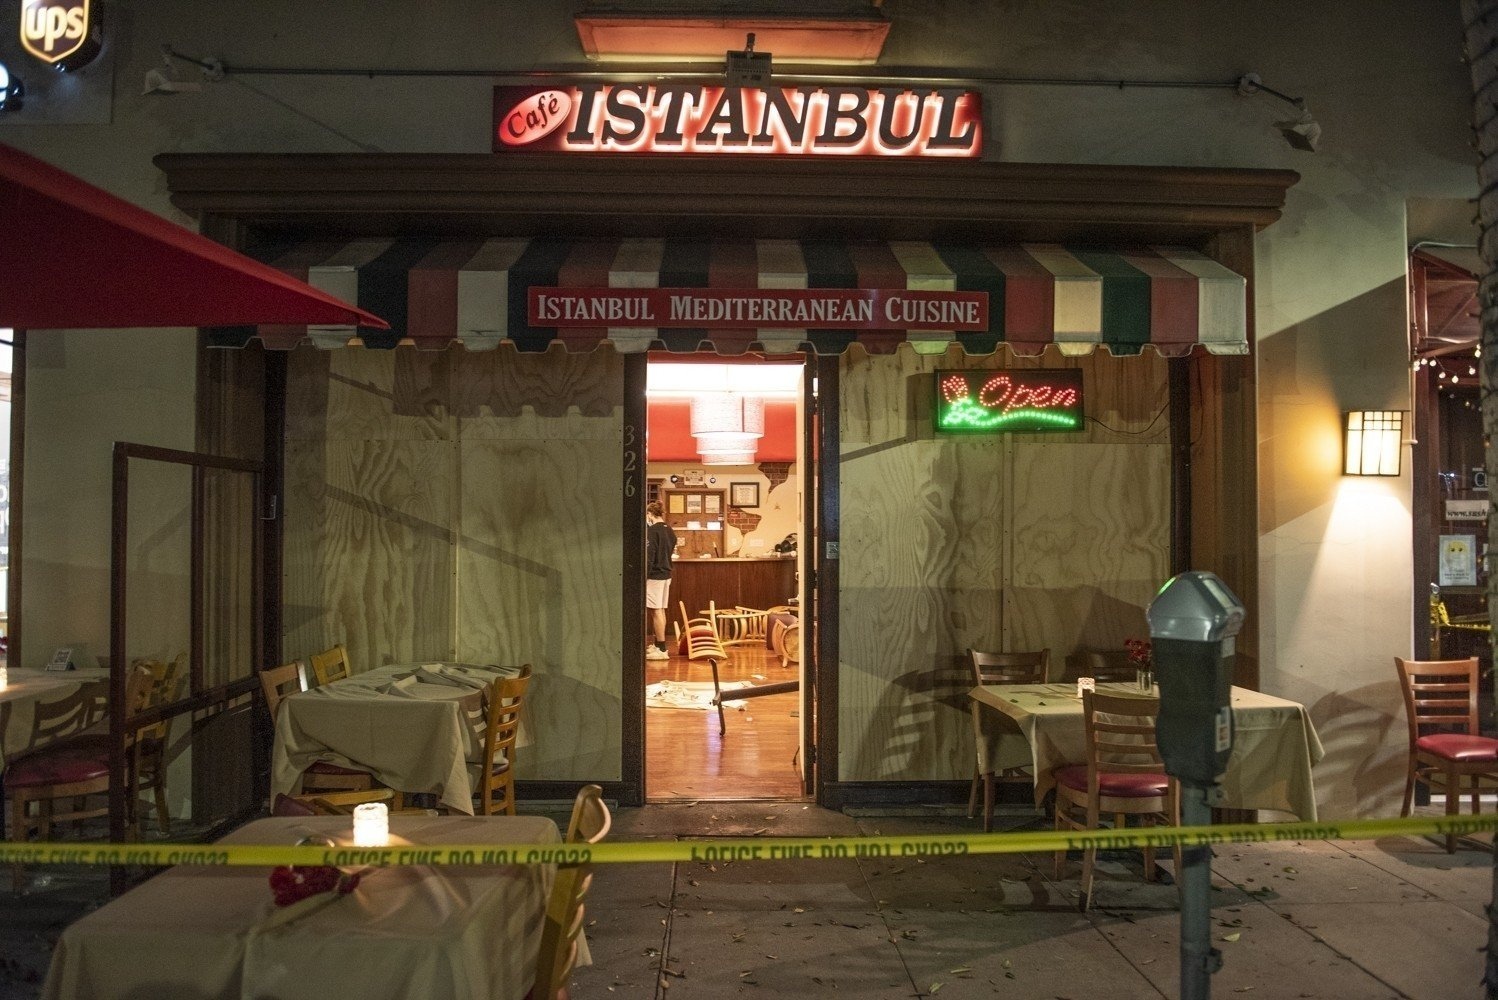 Armenian pleads guilty to hate-driven attack at Turkish restaurant